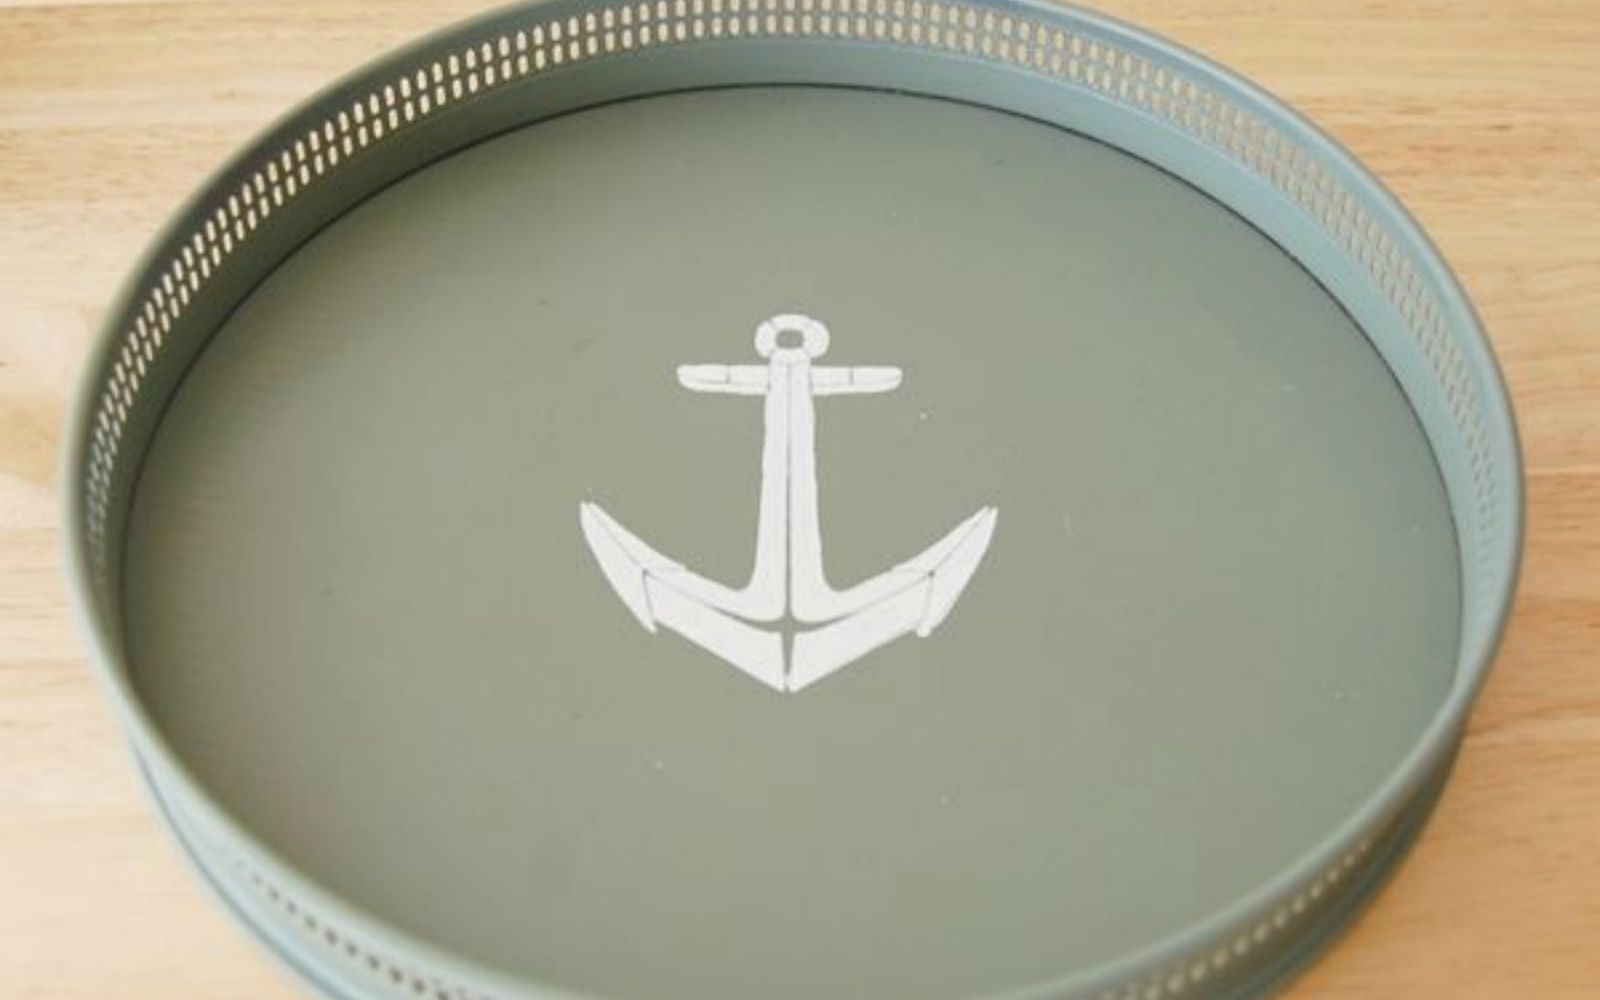 s 14 amazing things you can do with dollar store appetizer dishes, Stencil them with a nautical theme